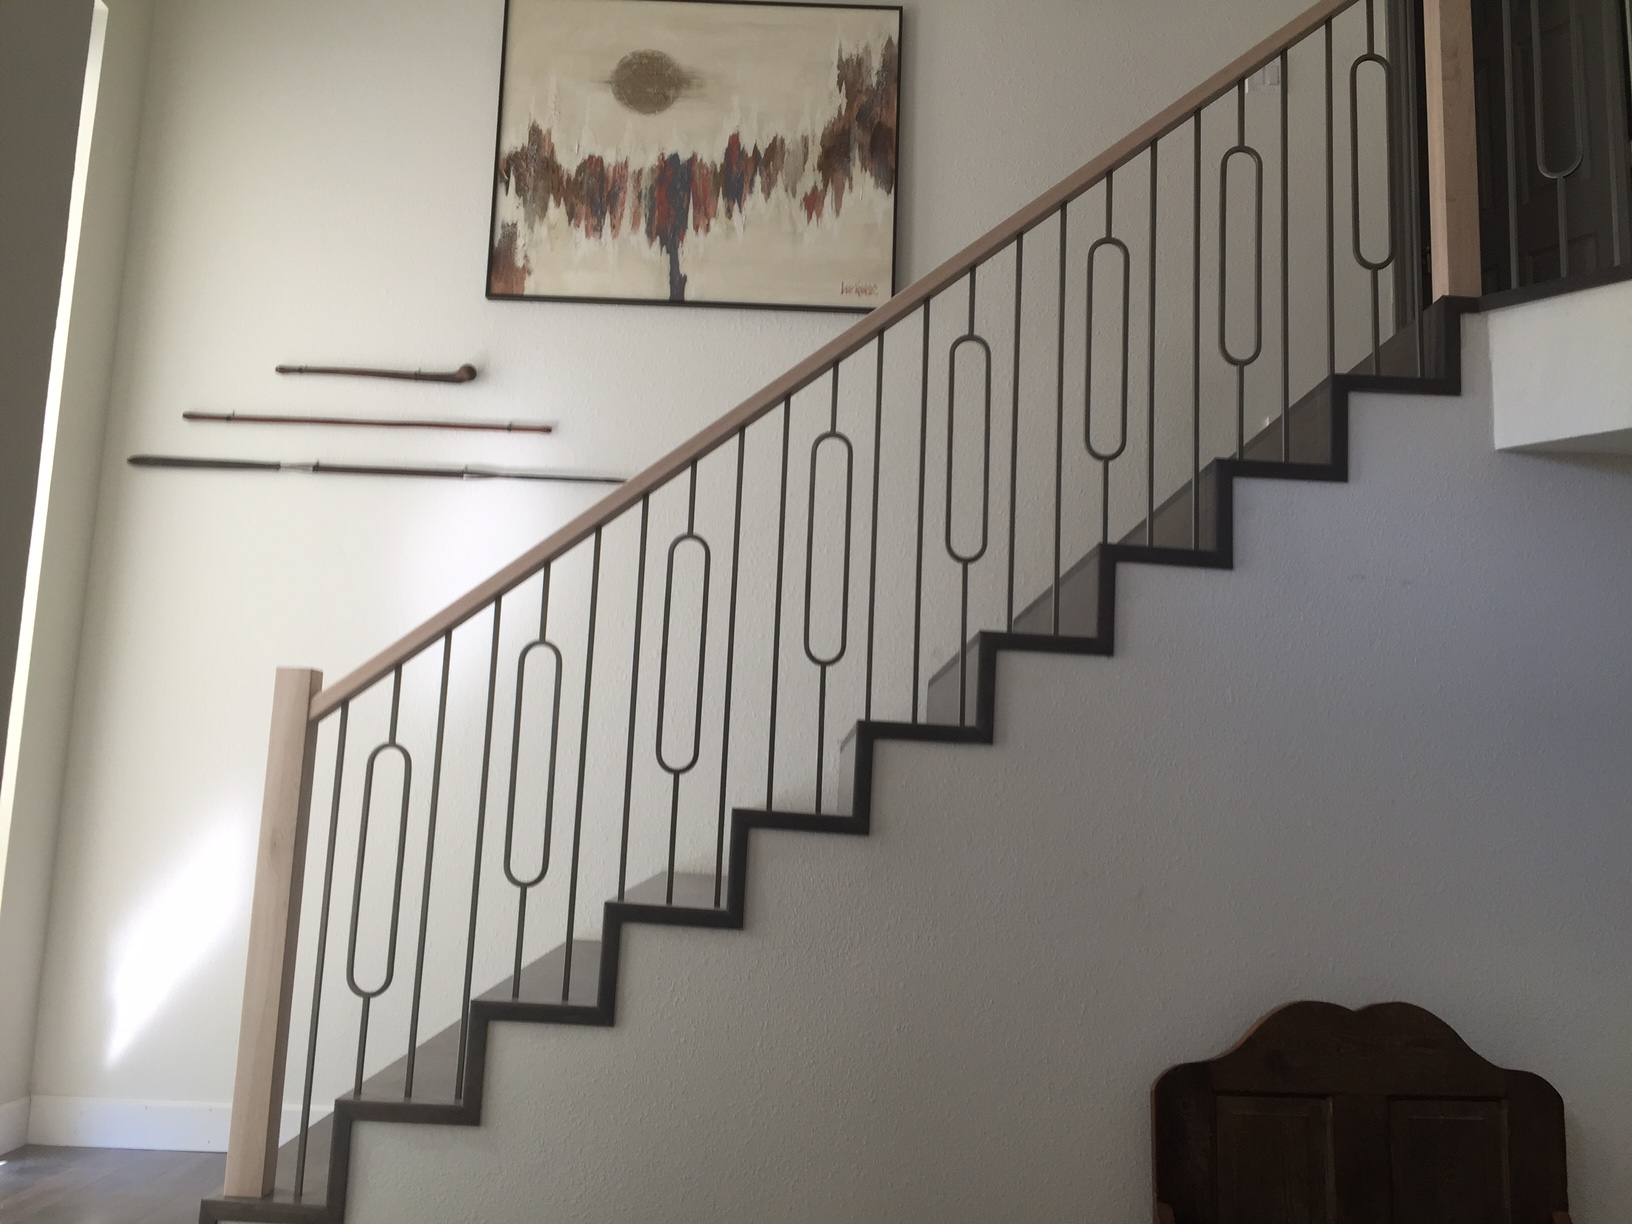 Chris Holman Staircase with 4002 Newel Posts